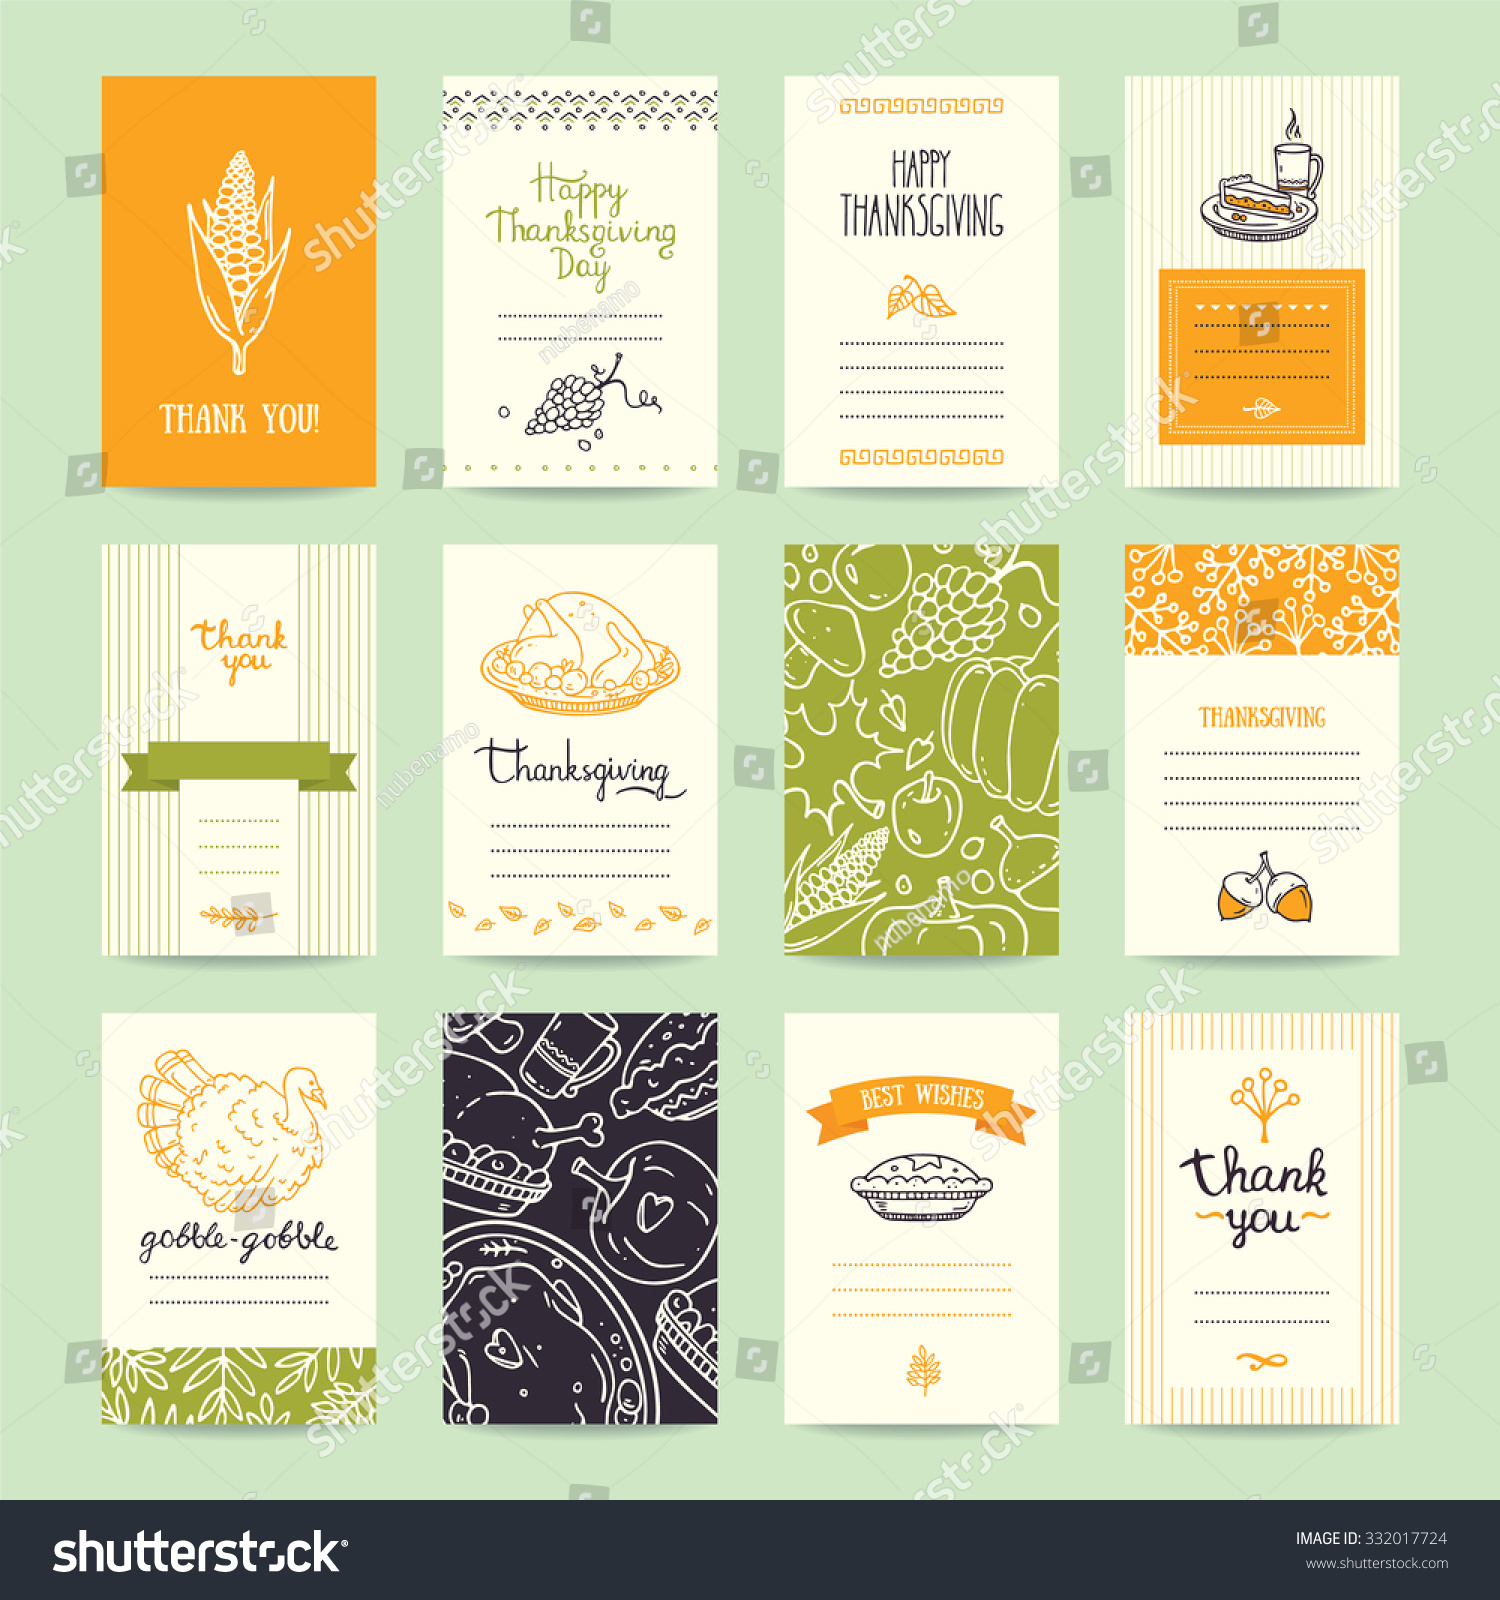 thanksgiving party invitation greeting card flyer stock vector thanksgiving party invitation and greeting card flyer banner poster templates hand drawn